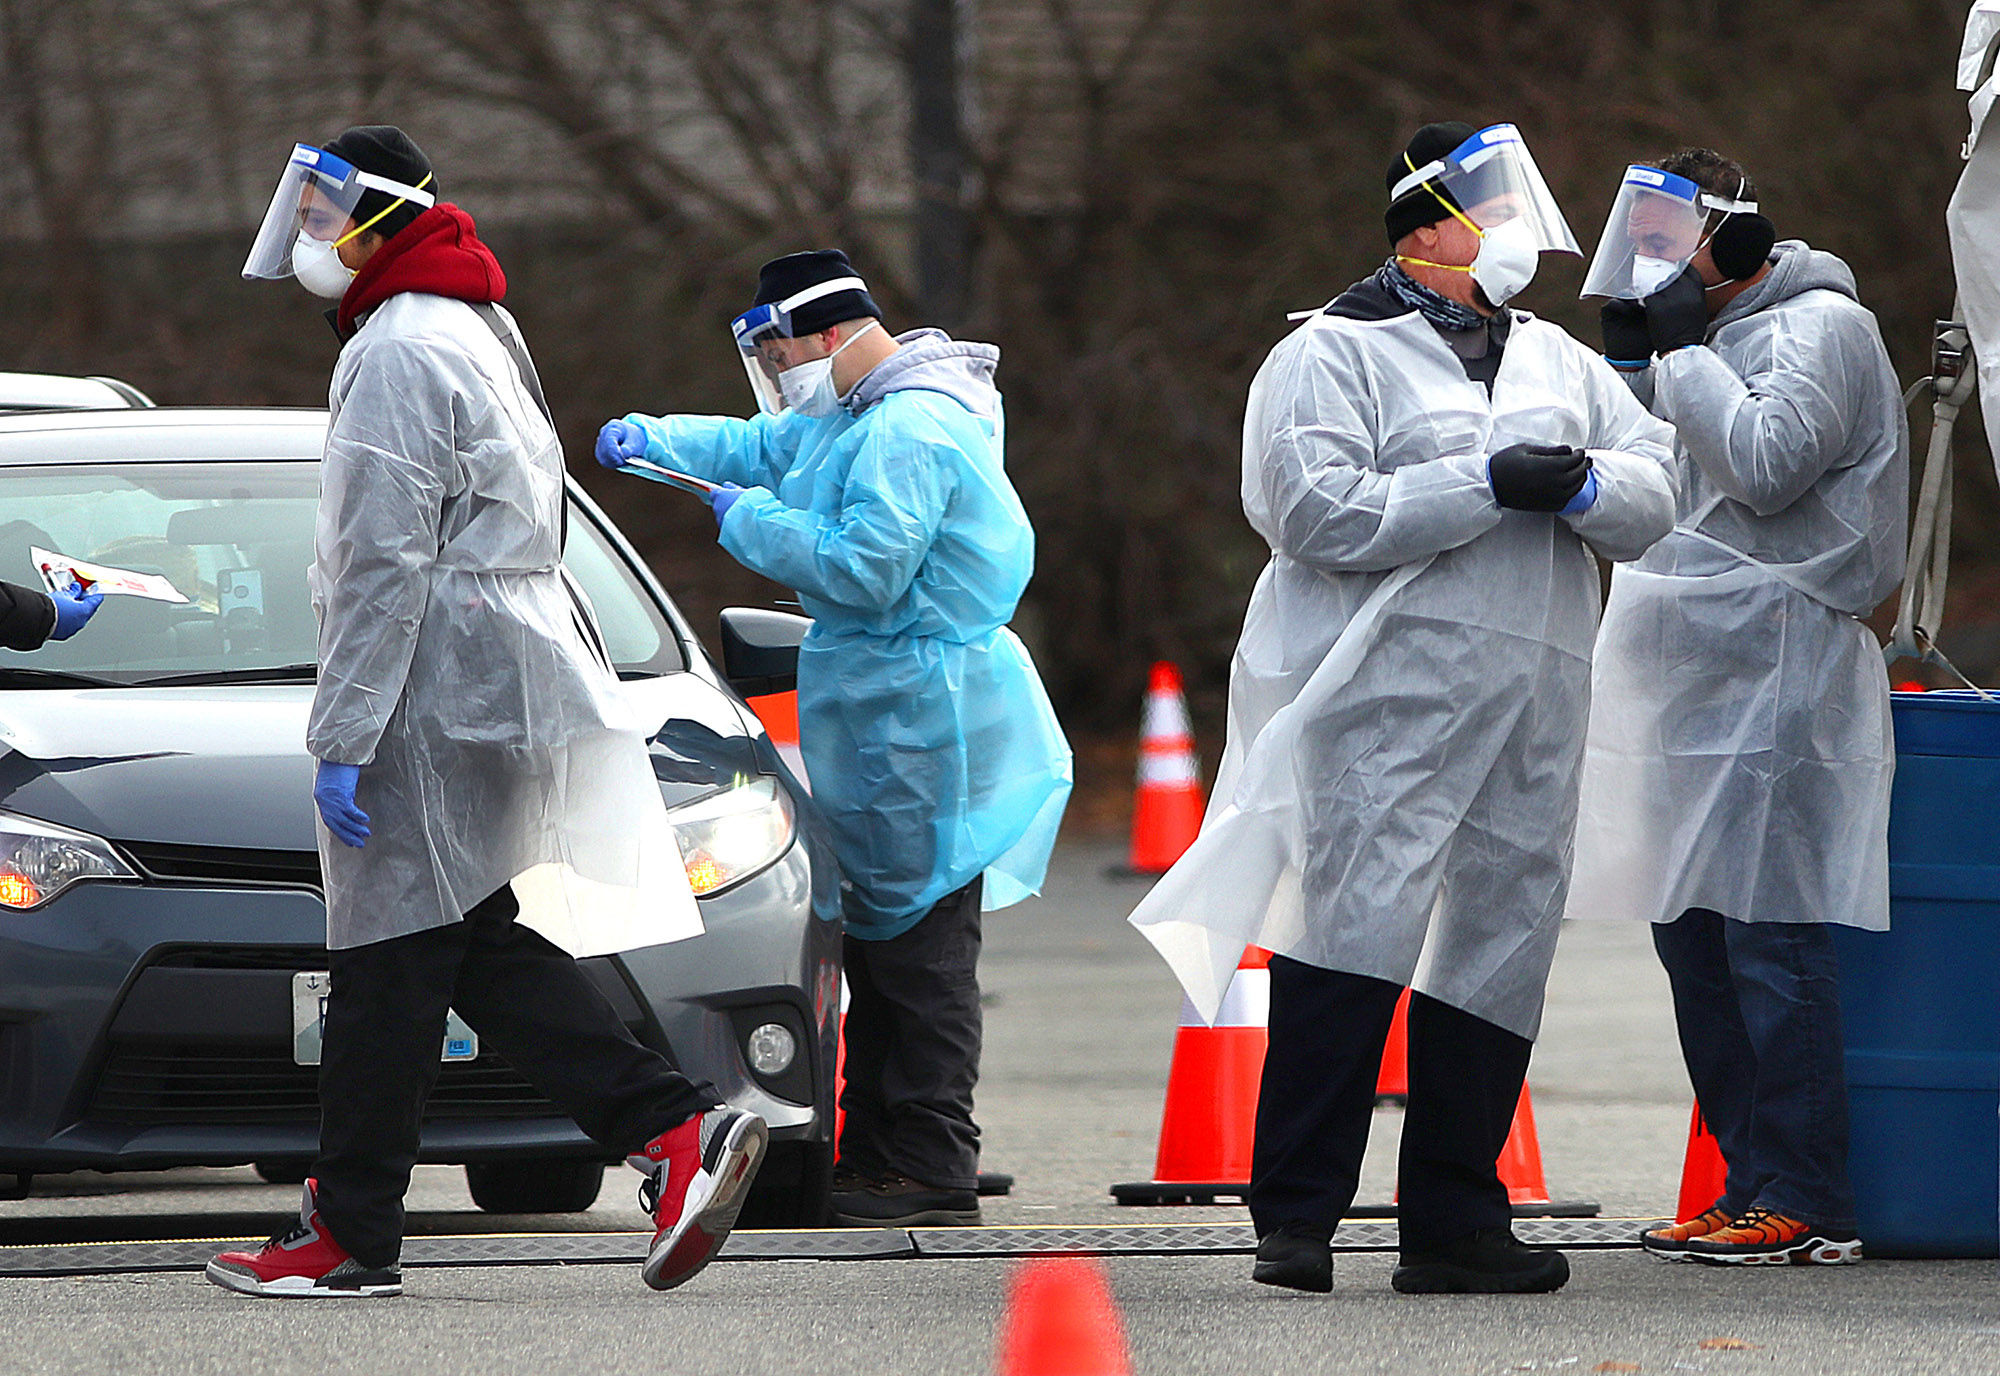 Health care workers on hand as they administer COVID-19 tests in the parking lot at McCoy Stadium in Pawtucket, Rhode Island on December 8.